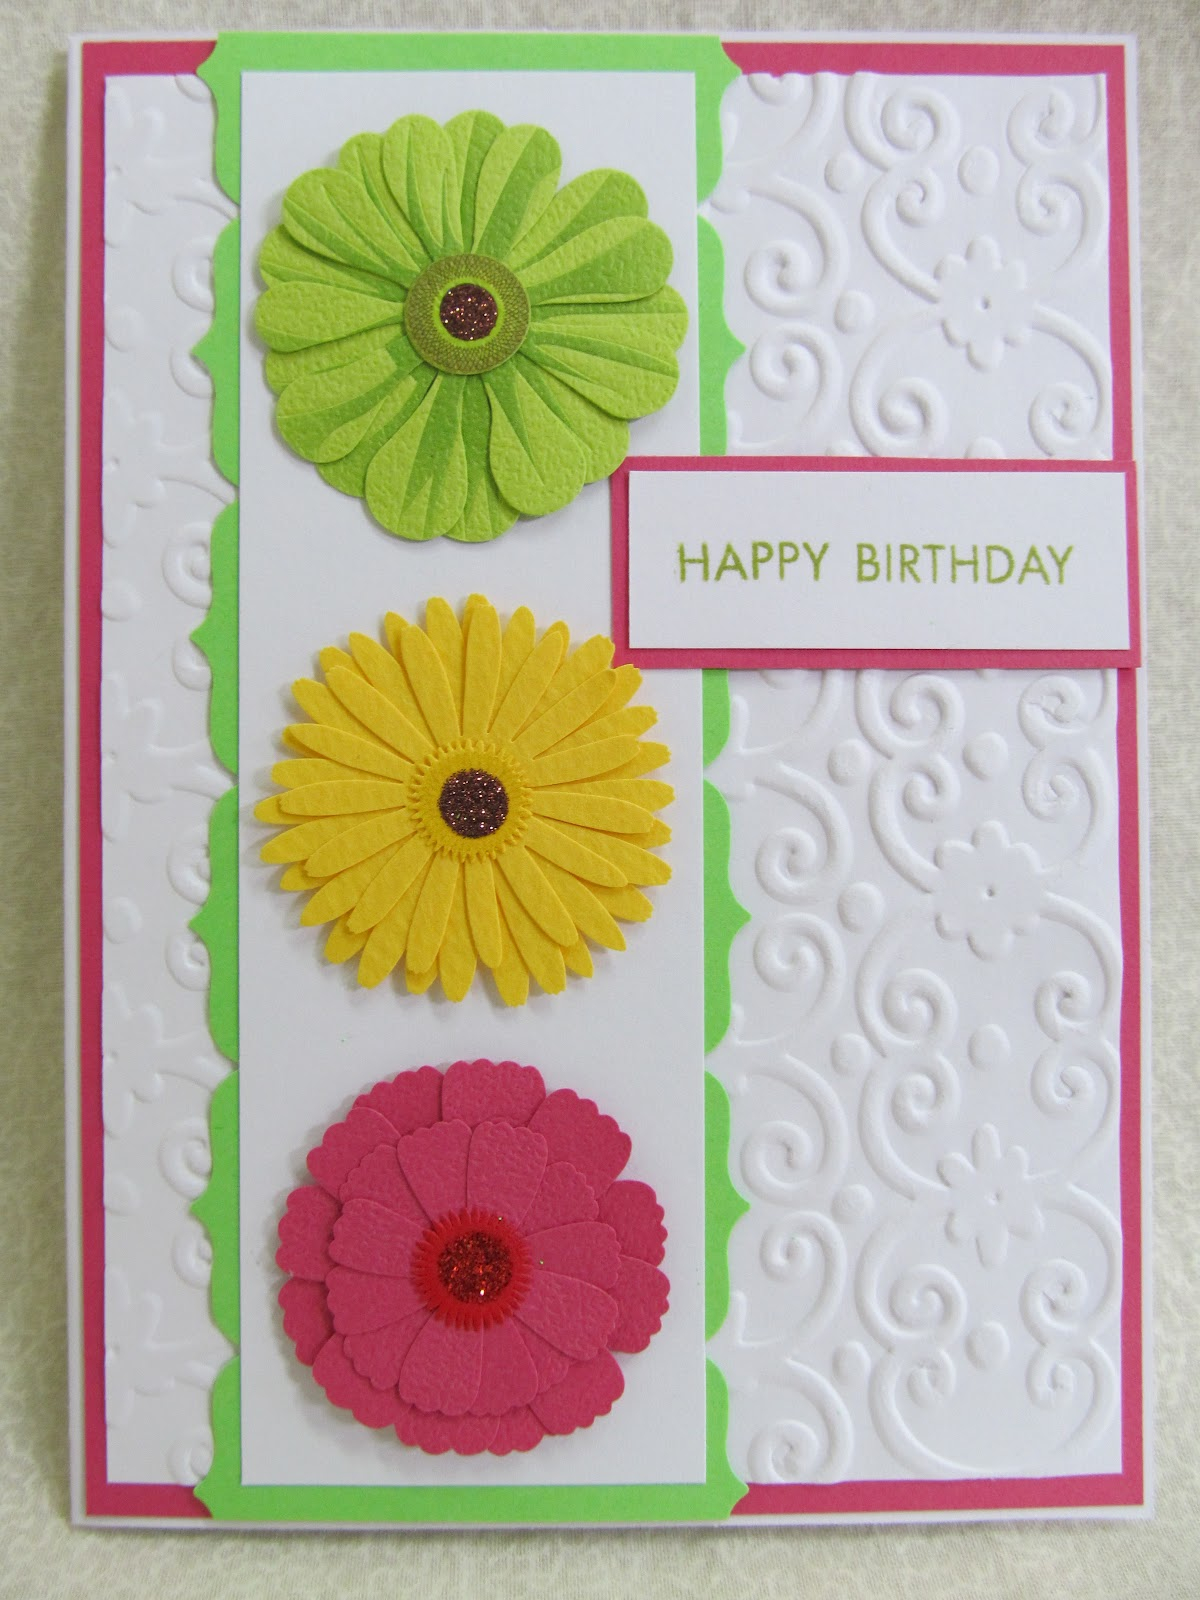 Handmade Birthday Invitation Cards Ideas Simple And Cute Handmade Birthday Cards Cute Greeting Cards Bright